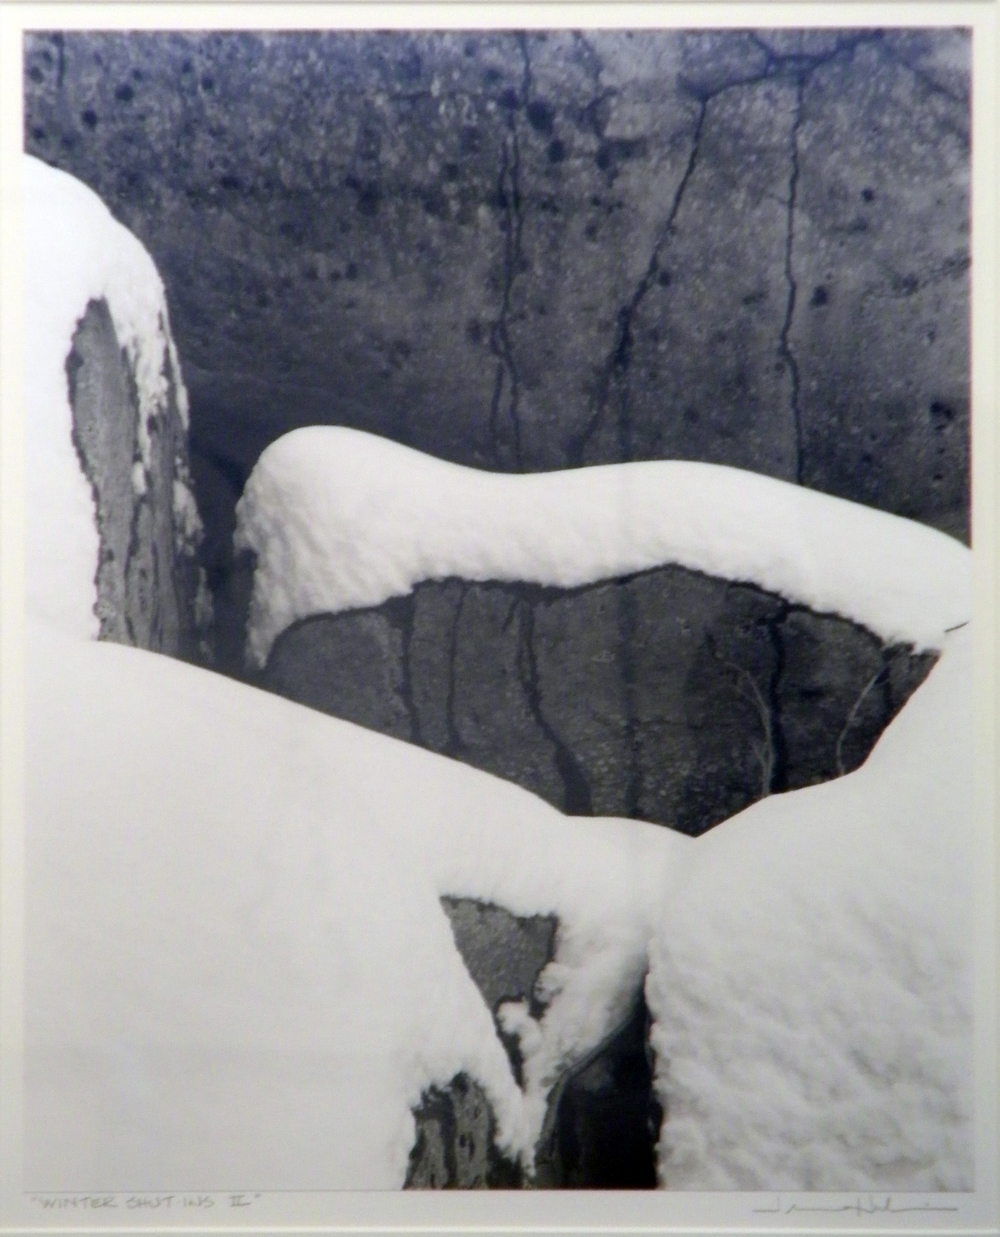 "Jerome Hawkins Winter Shut-Ins II, 1995 black and white photo, 1/1 29 1/8"" x 25 1/8"""